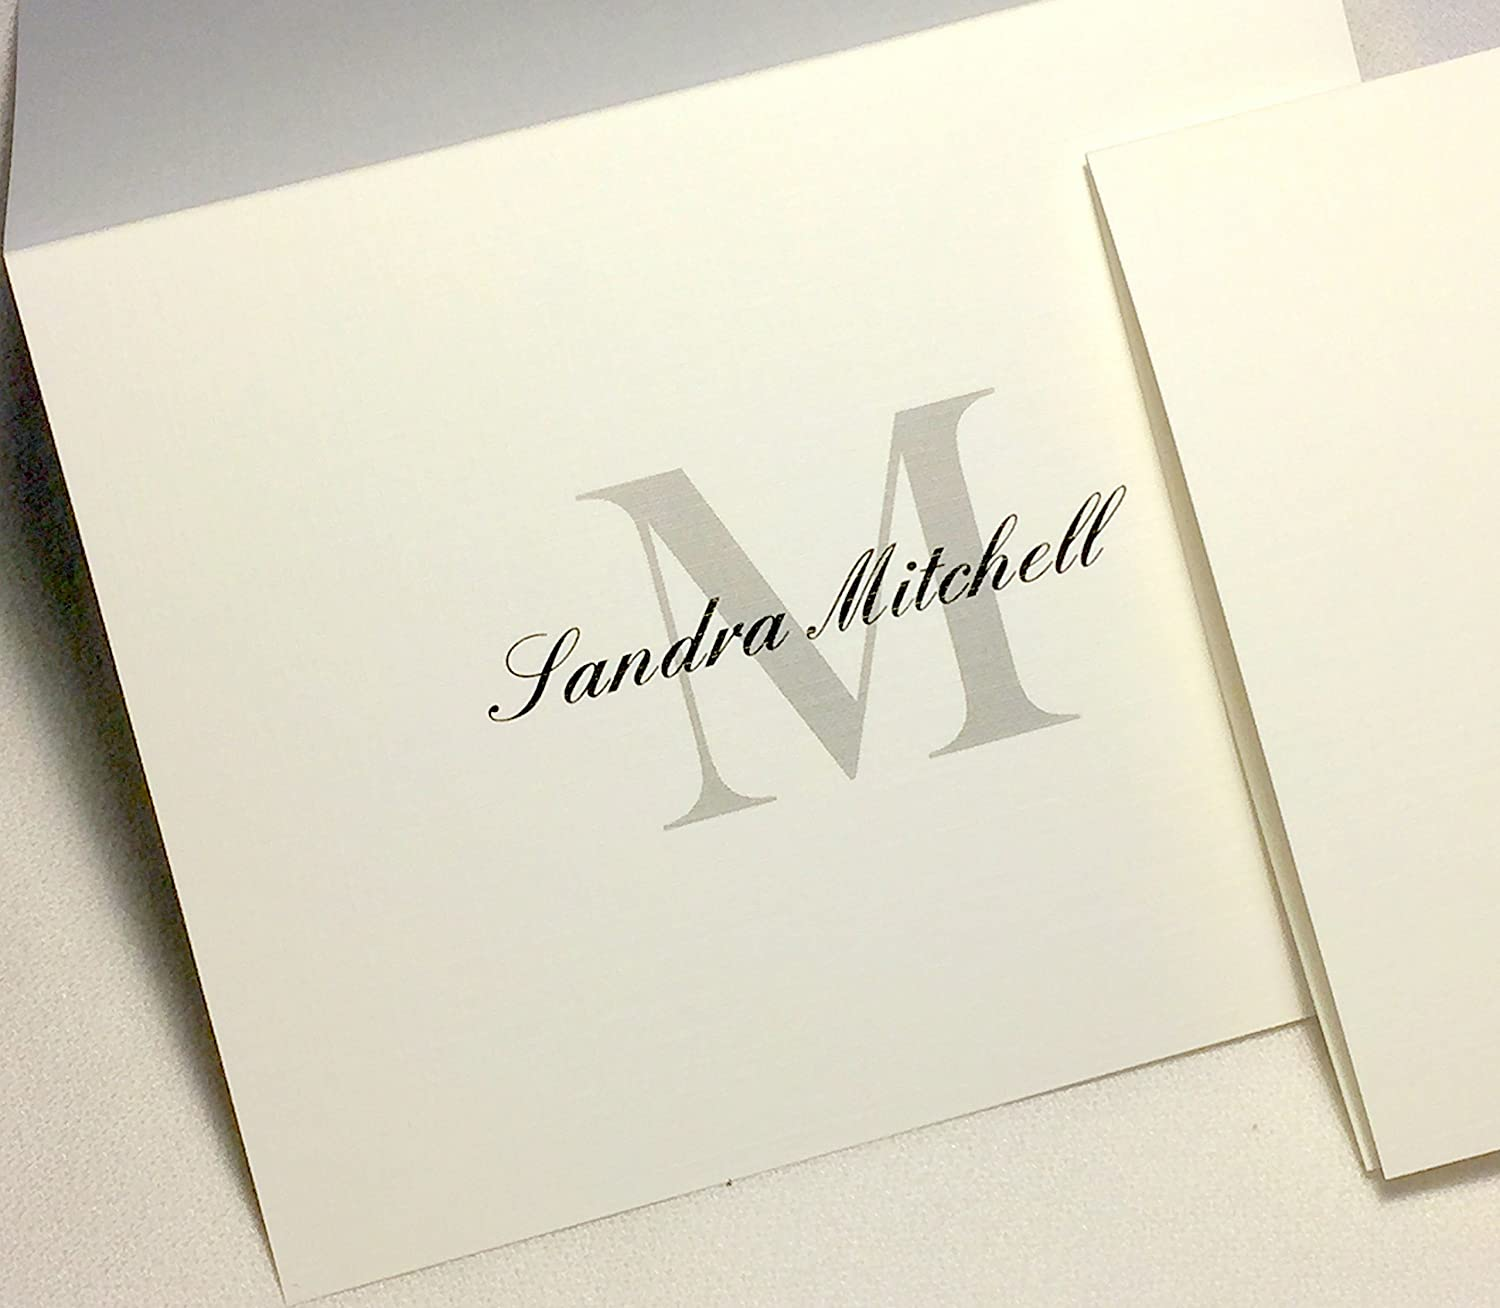 Matching Envelopes Included 50 Personalized Note Cards with Initial Plus Full Name Choose Large Script Initial in Blue or Block Initial in Grey//Black Blank Inside.